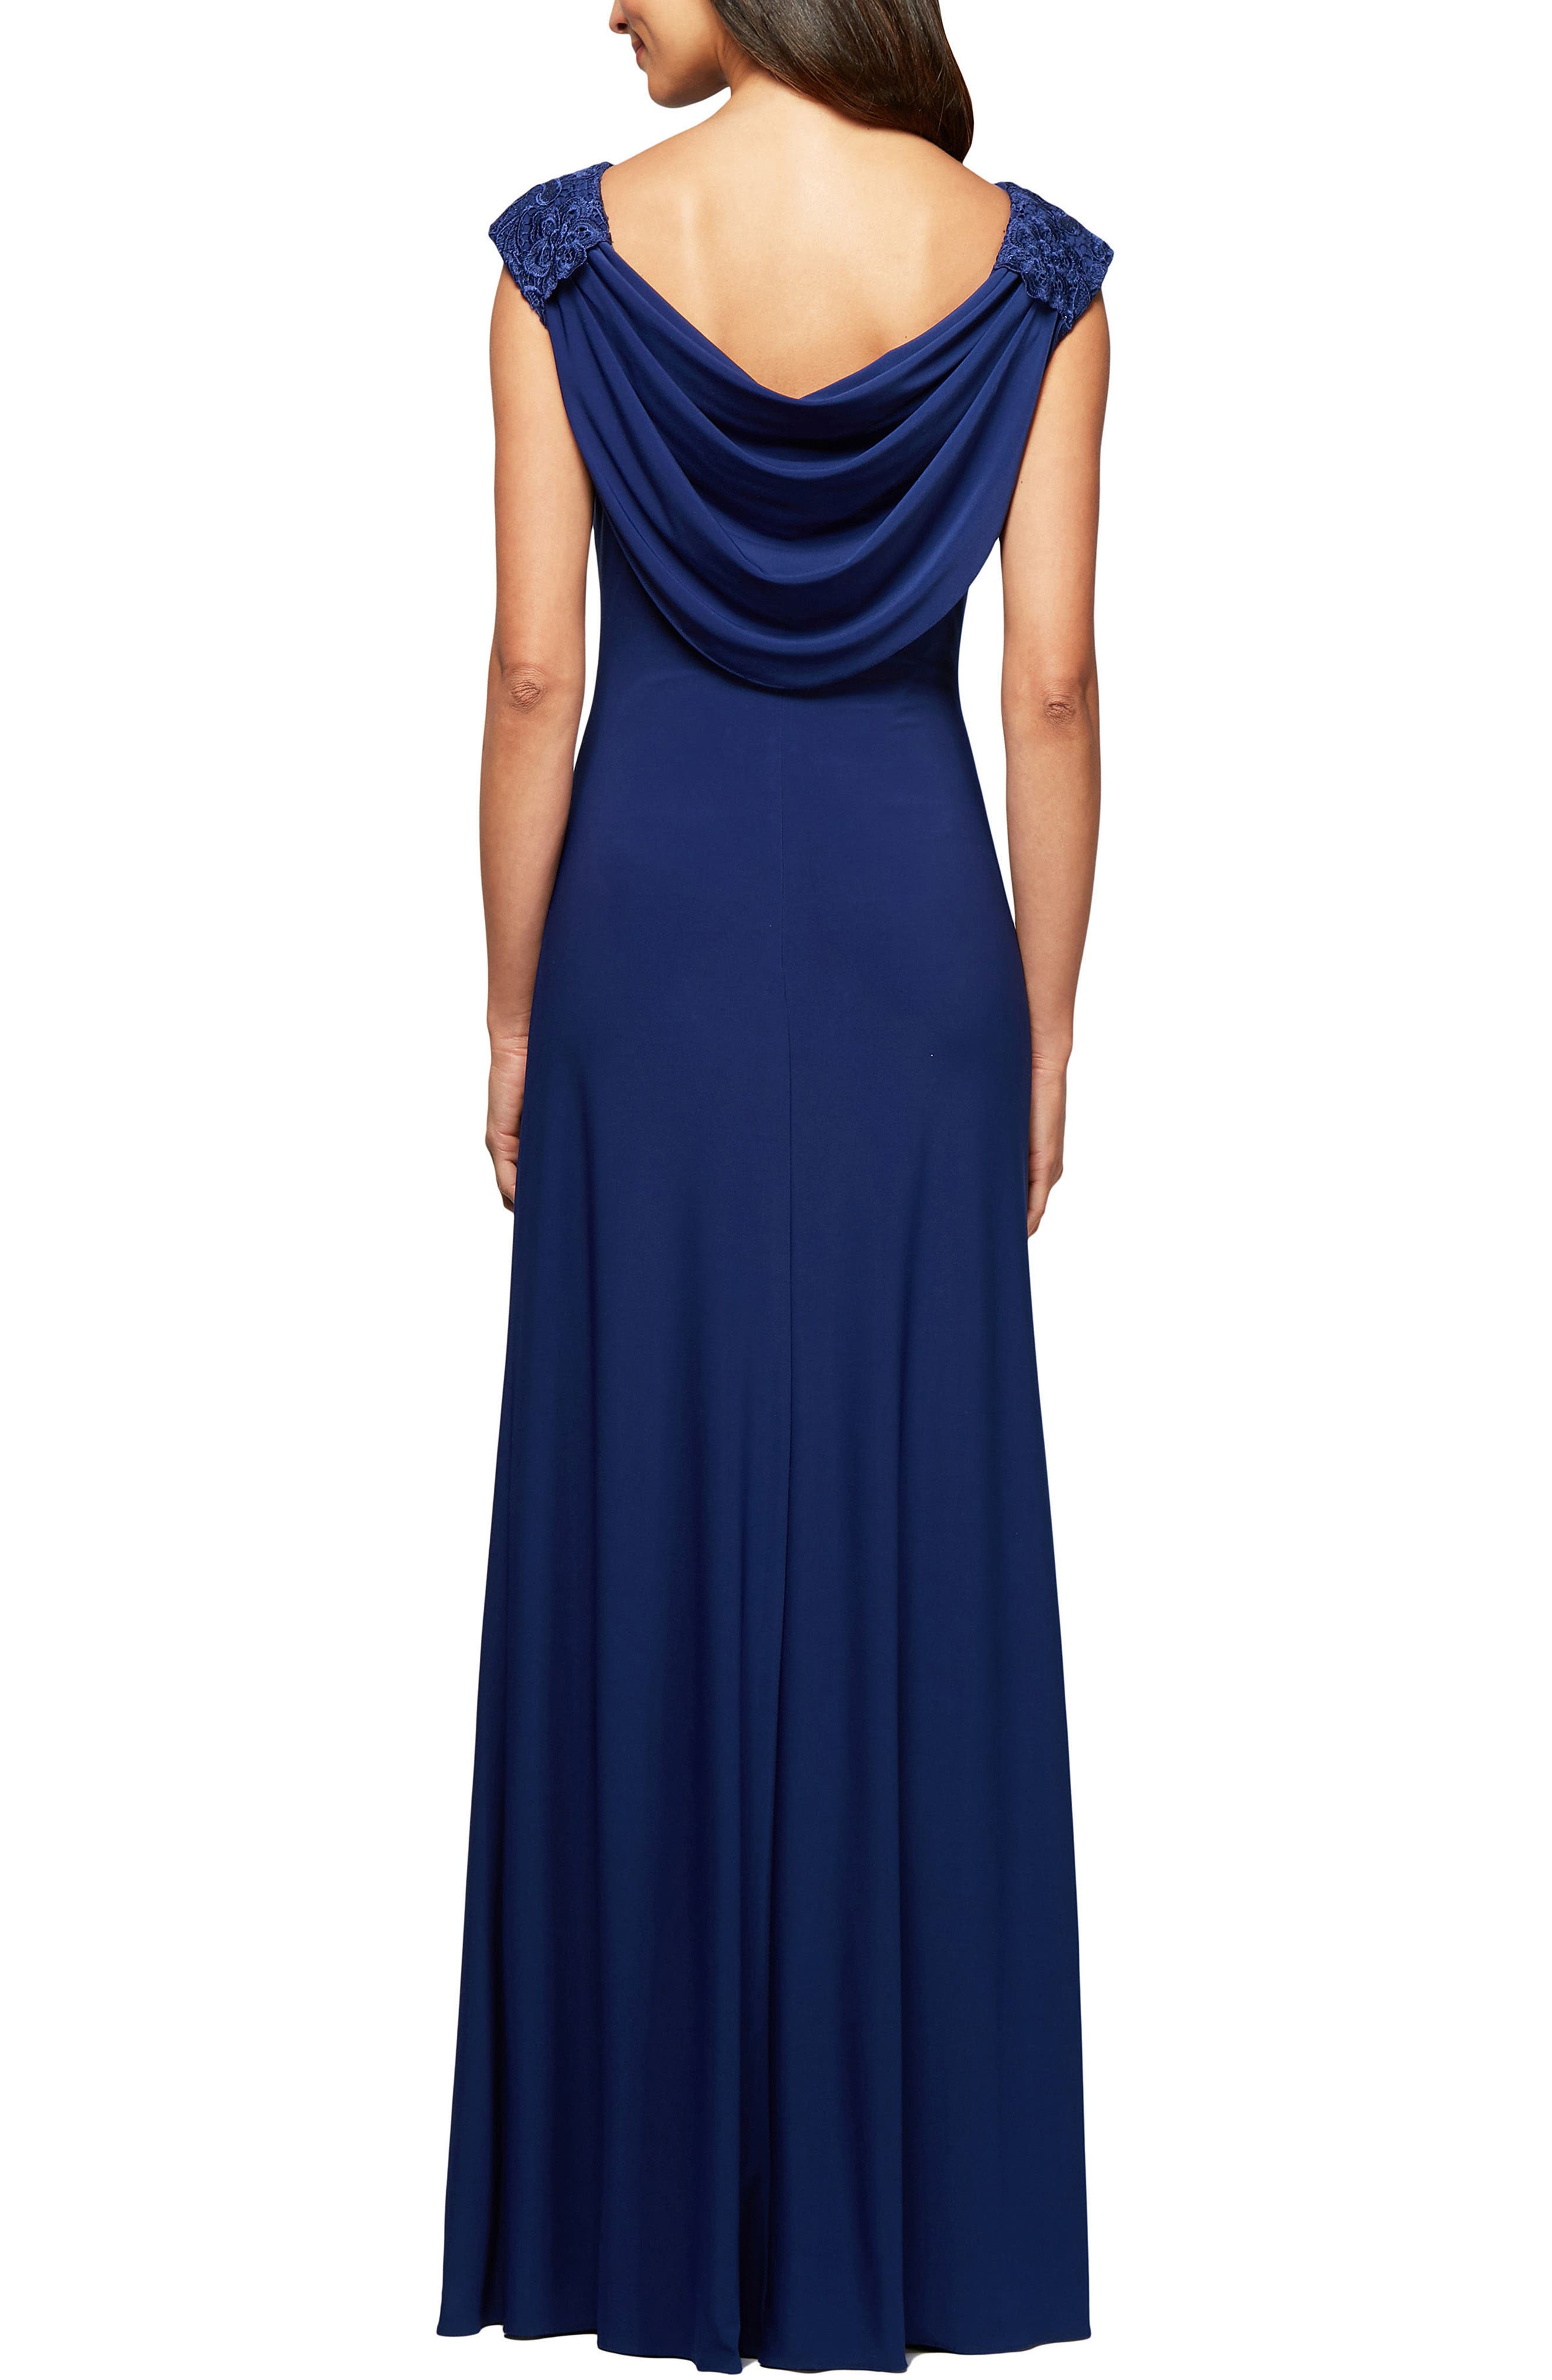 Ruched Gown,                             Alternate thumbnail 2, color,                             461